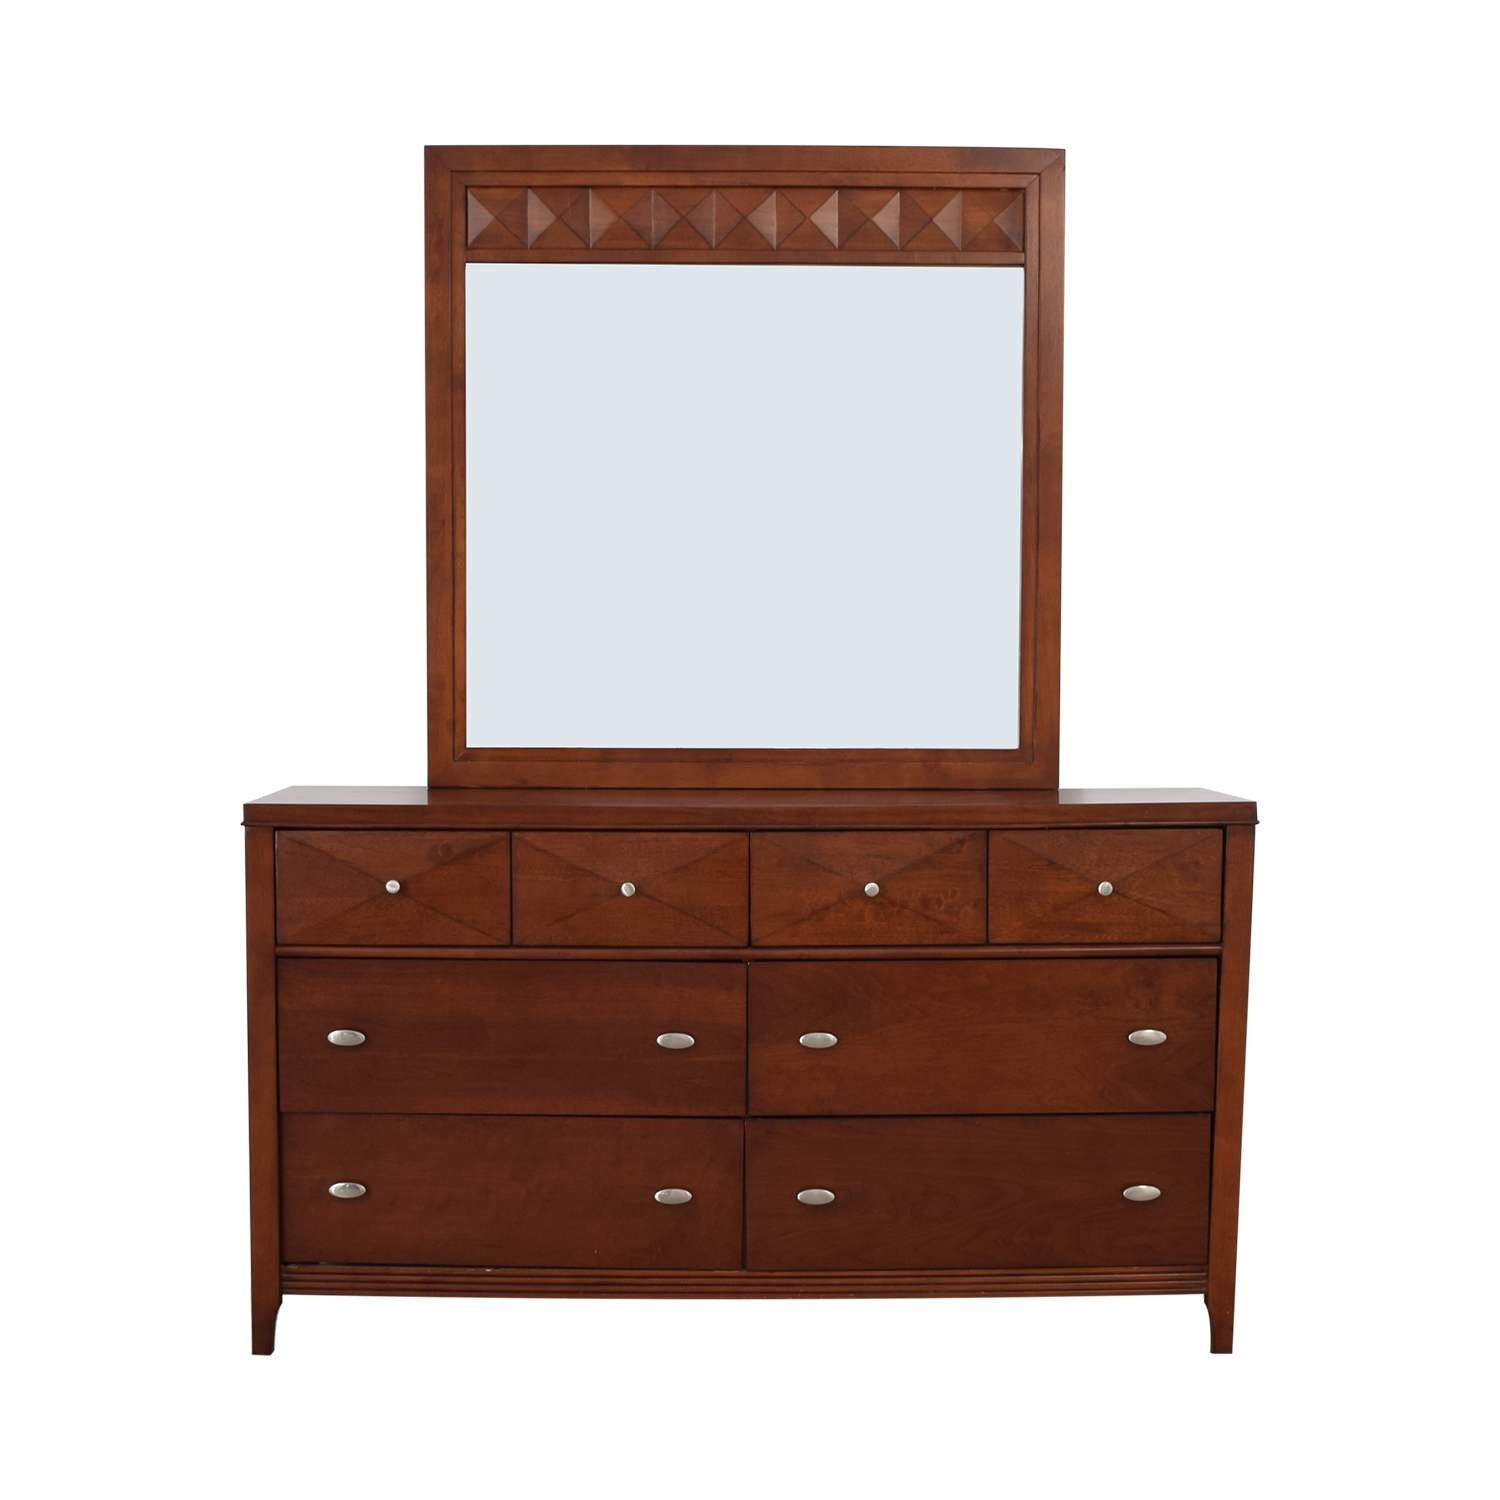 Wood Six-Drawer Dresser with Mirror sale